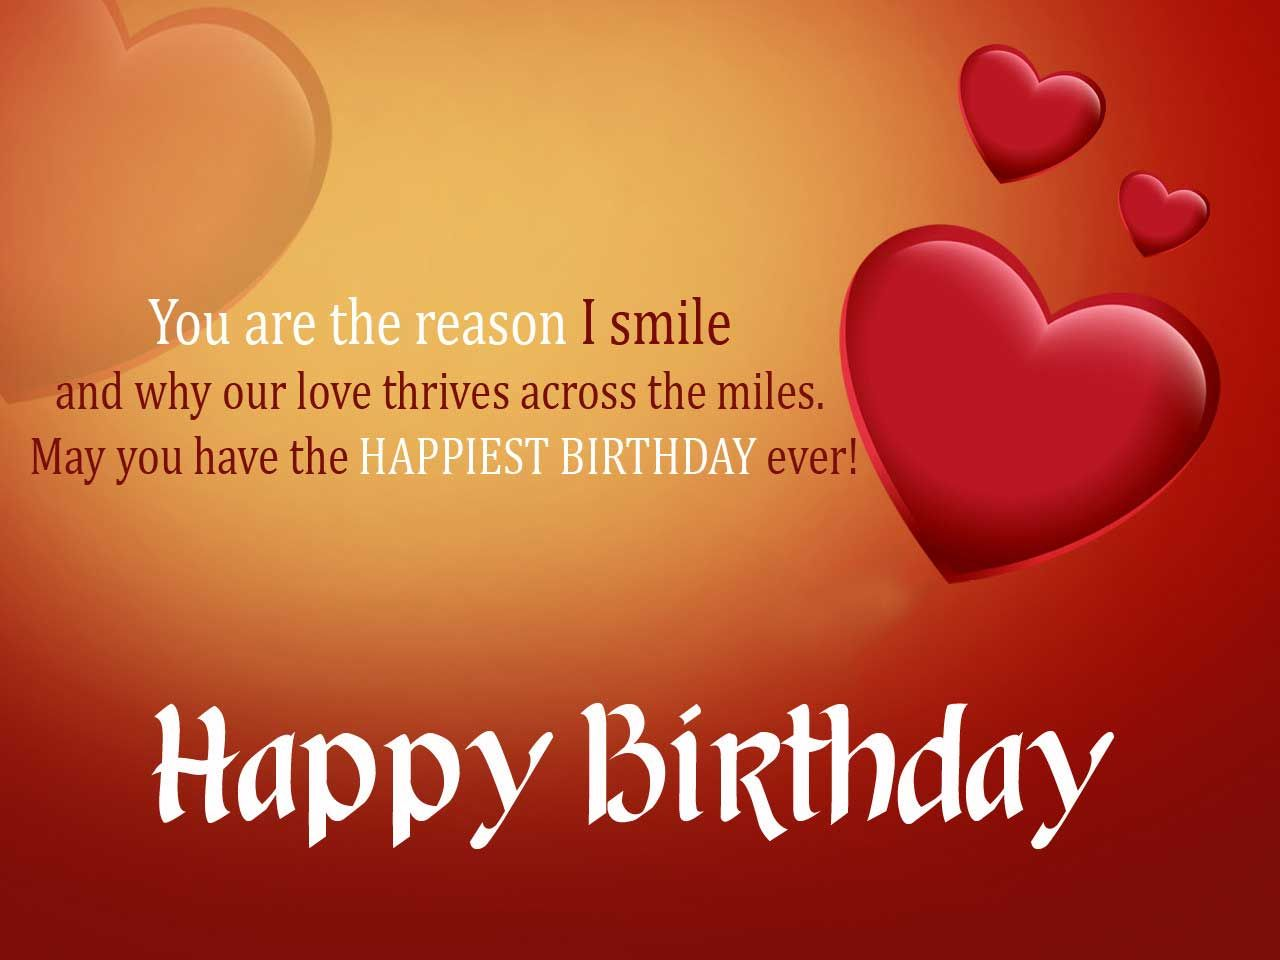 Romantic Birthday Wishes For Girlfriend Best Wishes Images